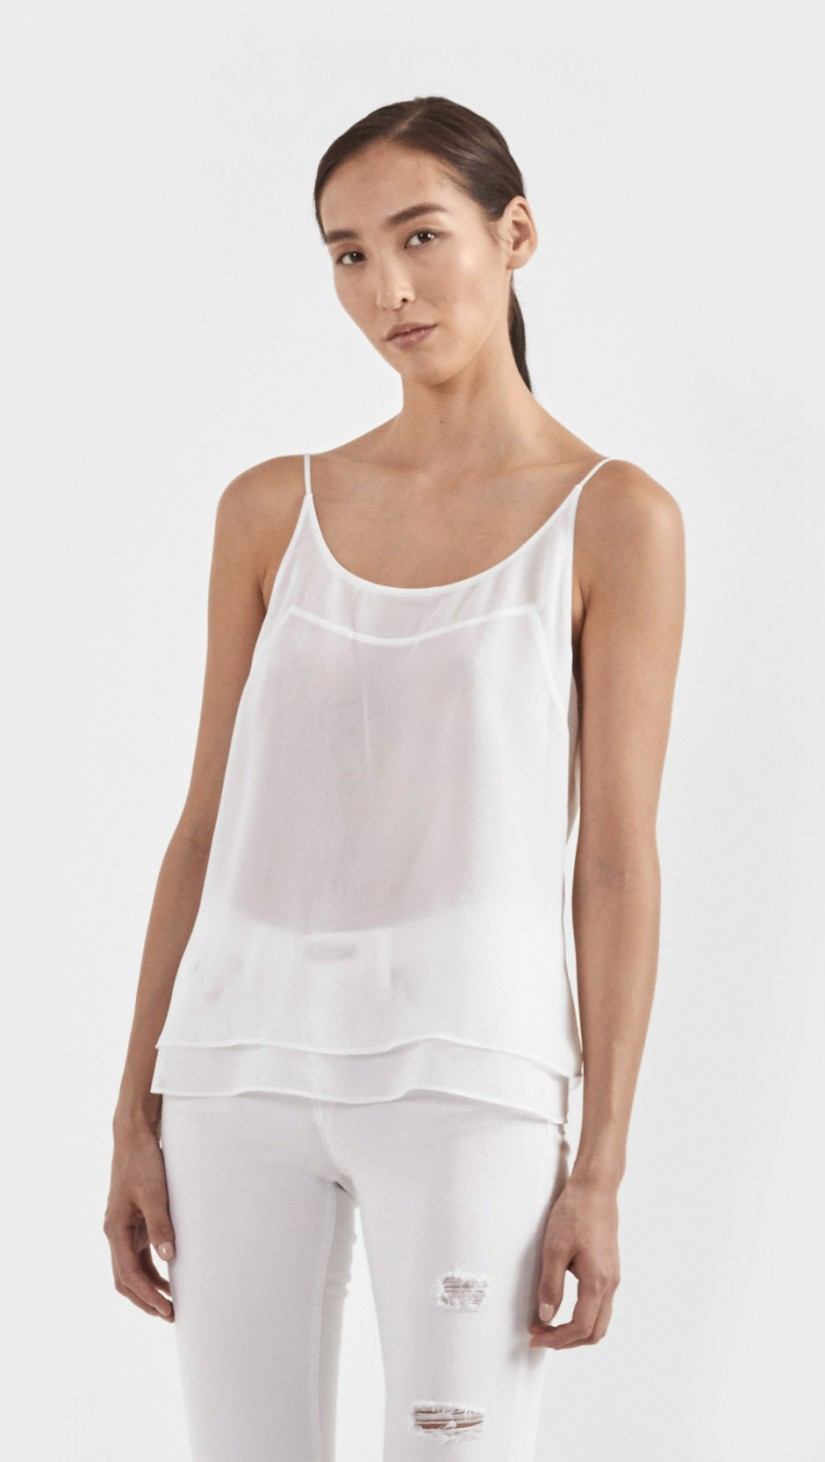 Tank in Linen   Semi sheer linen tank top in layers. Slightly longer in front.  J BRAND $45